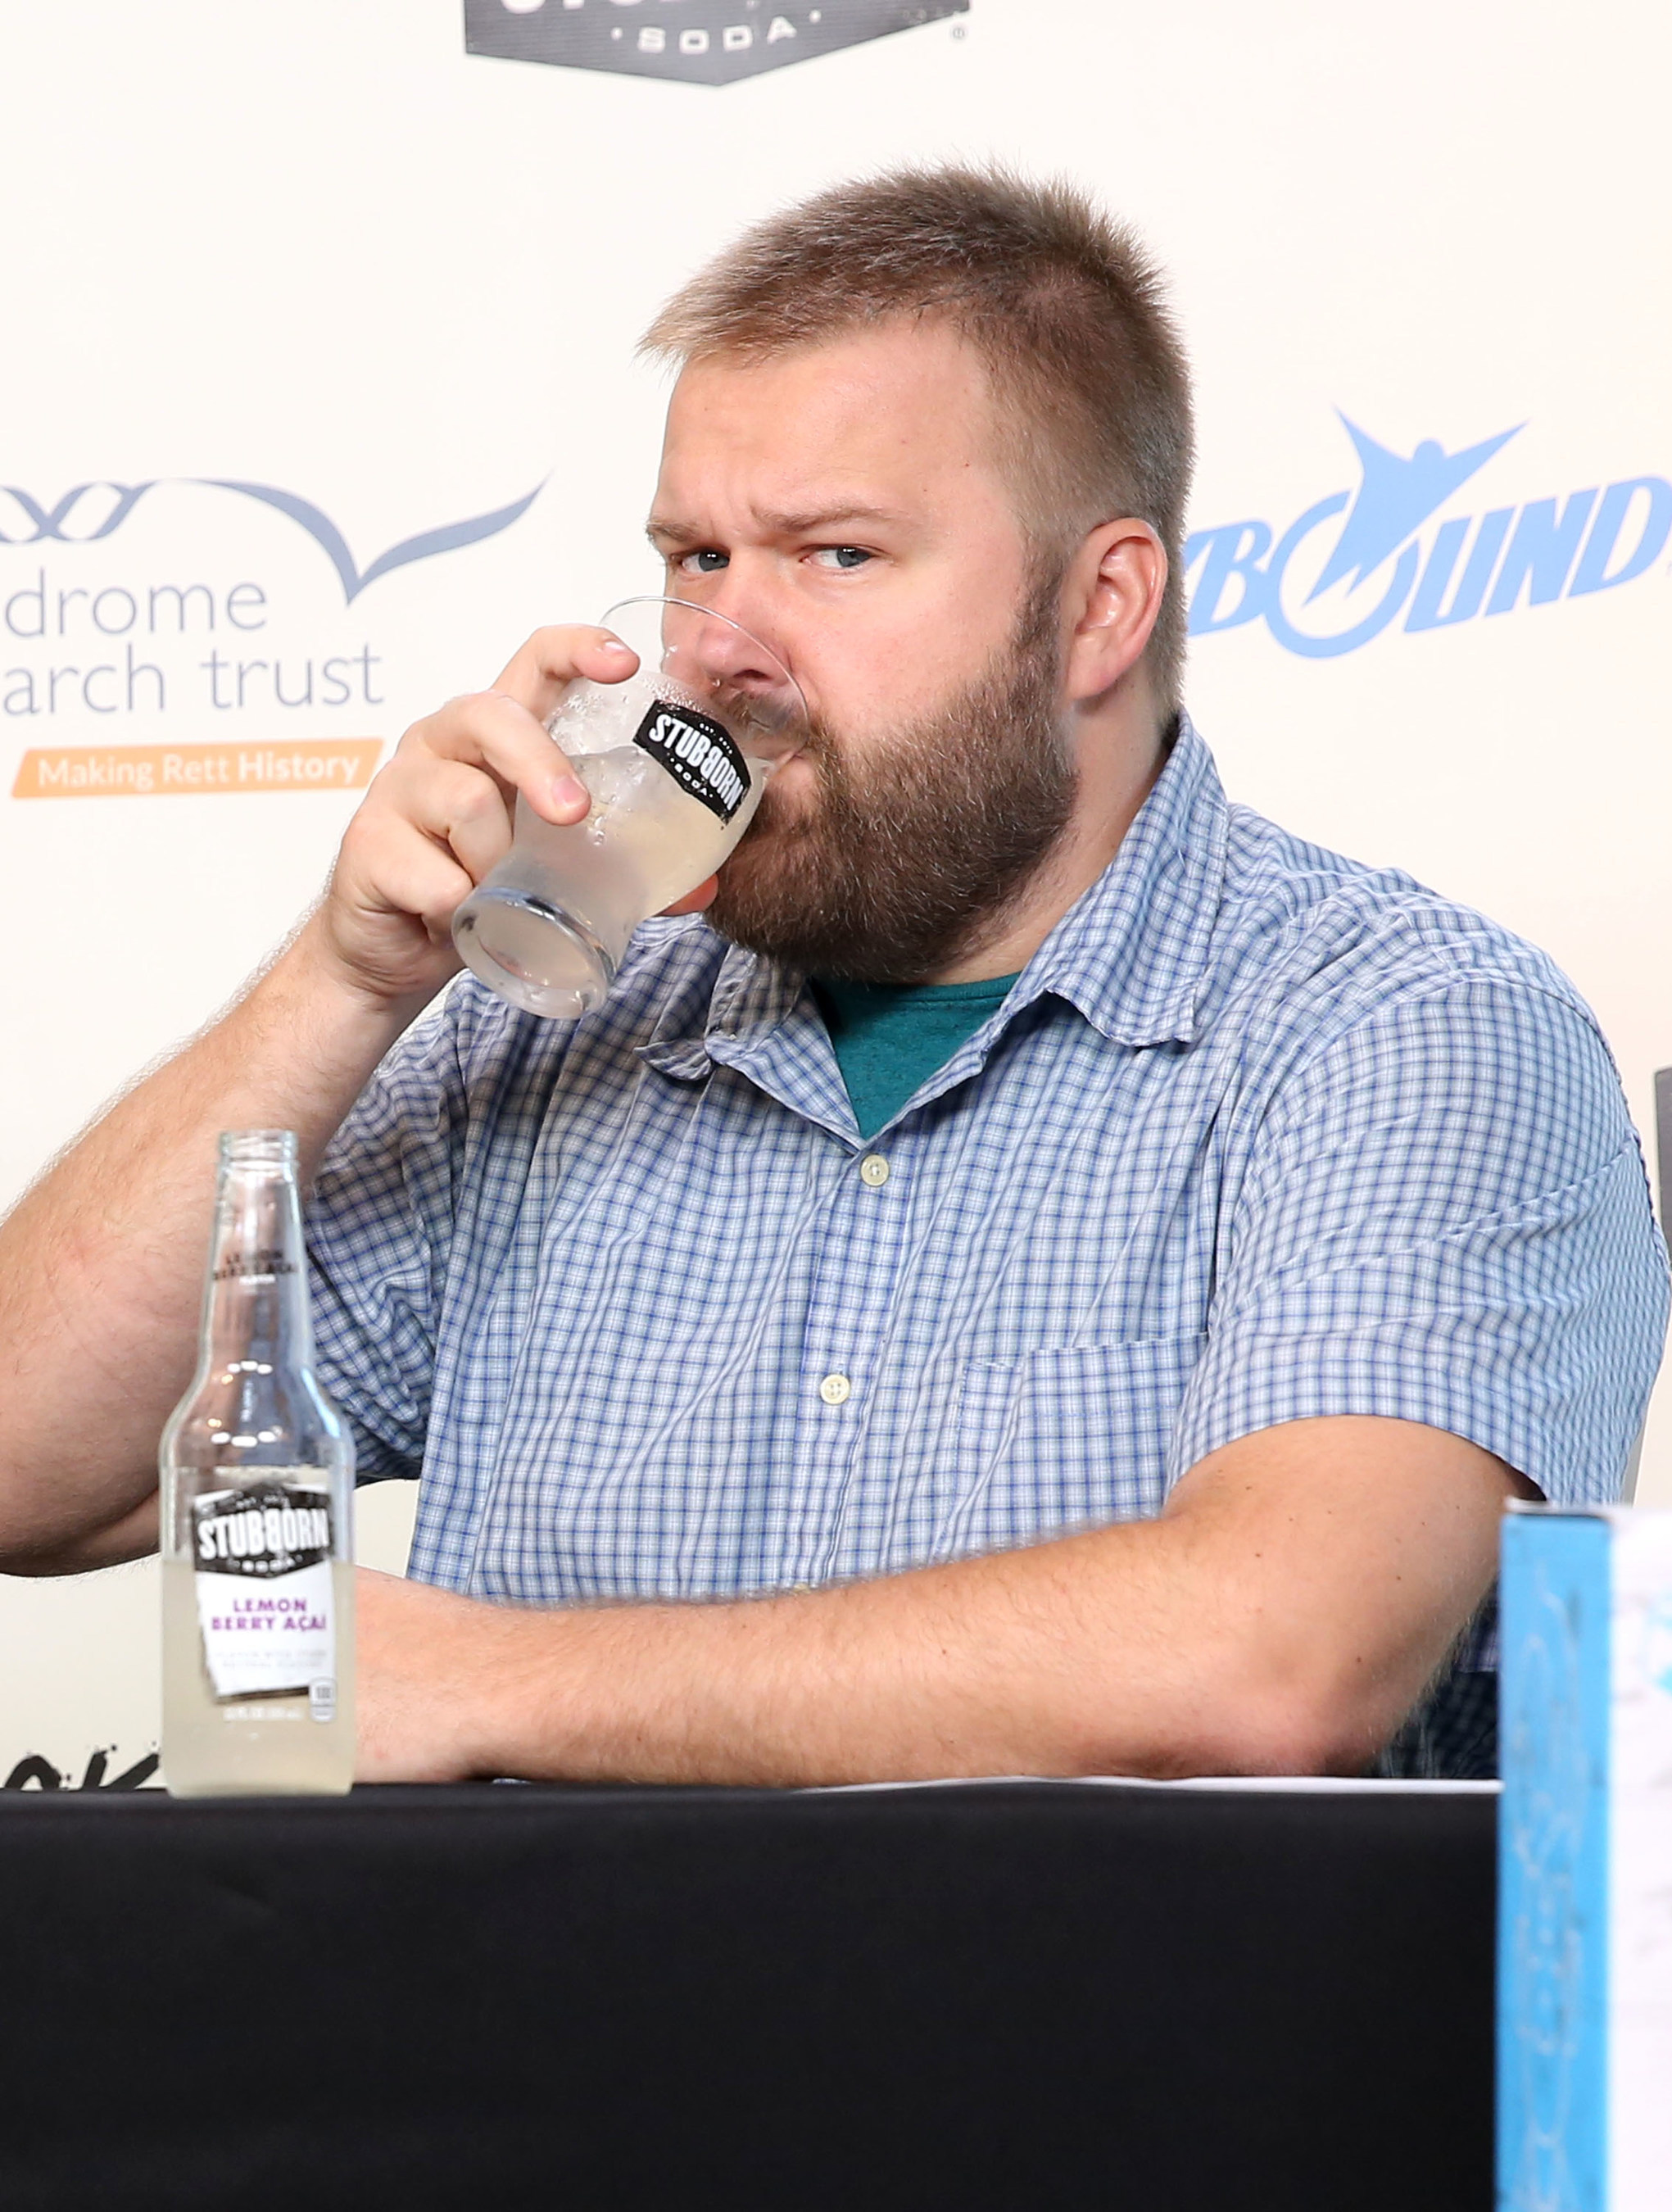 Robert Kirkman with Stubborn Soda